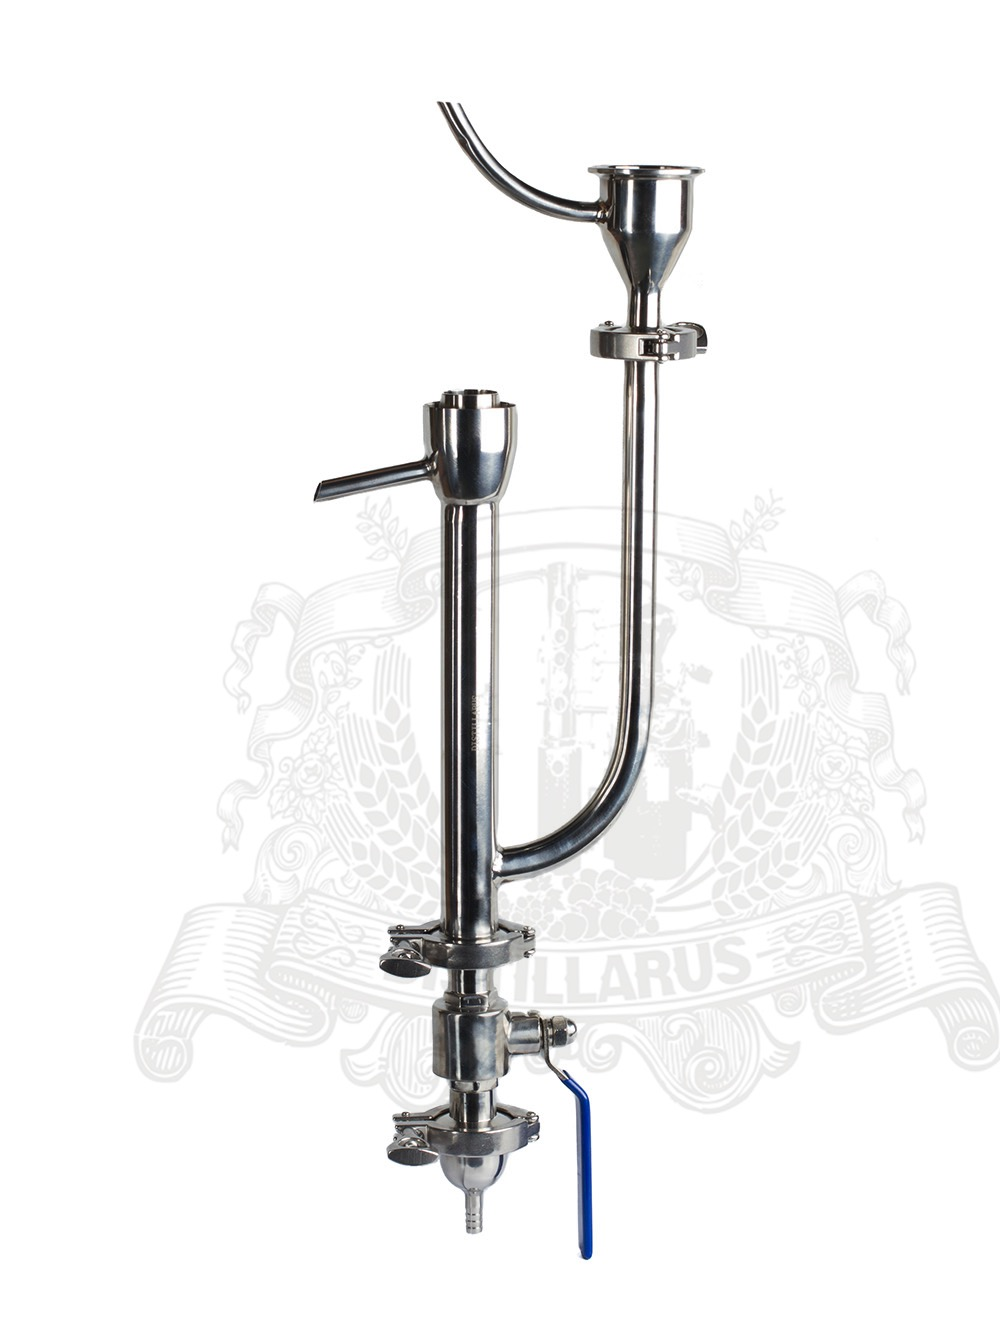 Tri clamp Parrot connection 2 OD64 stainless steel 304